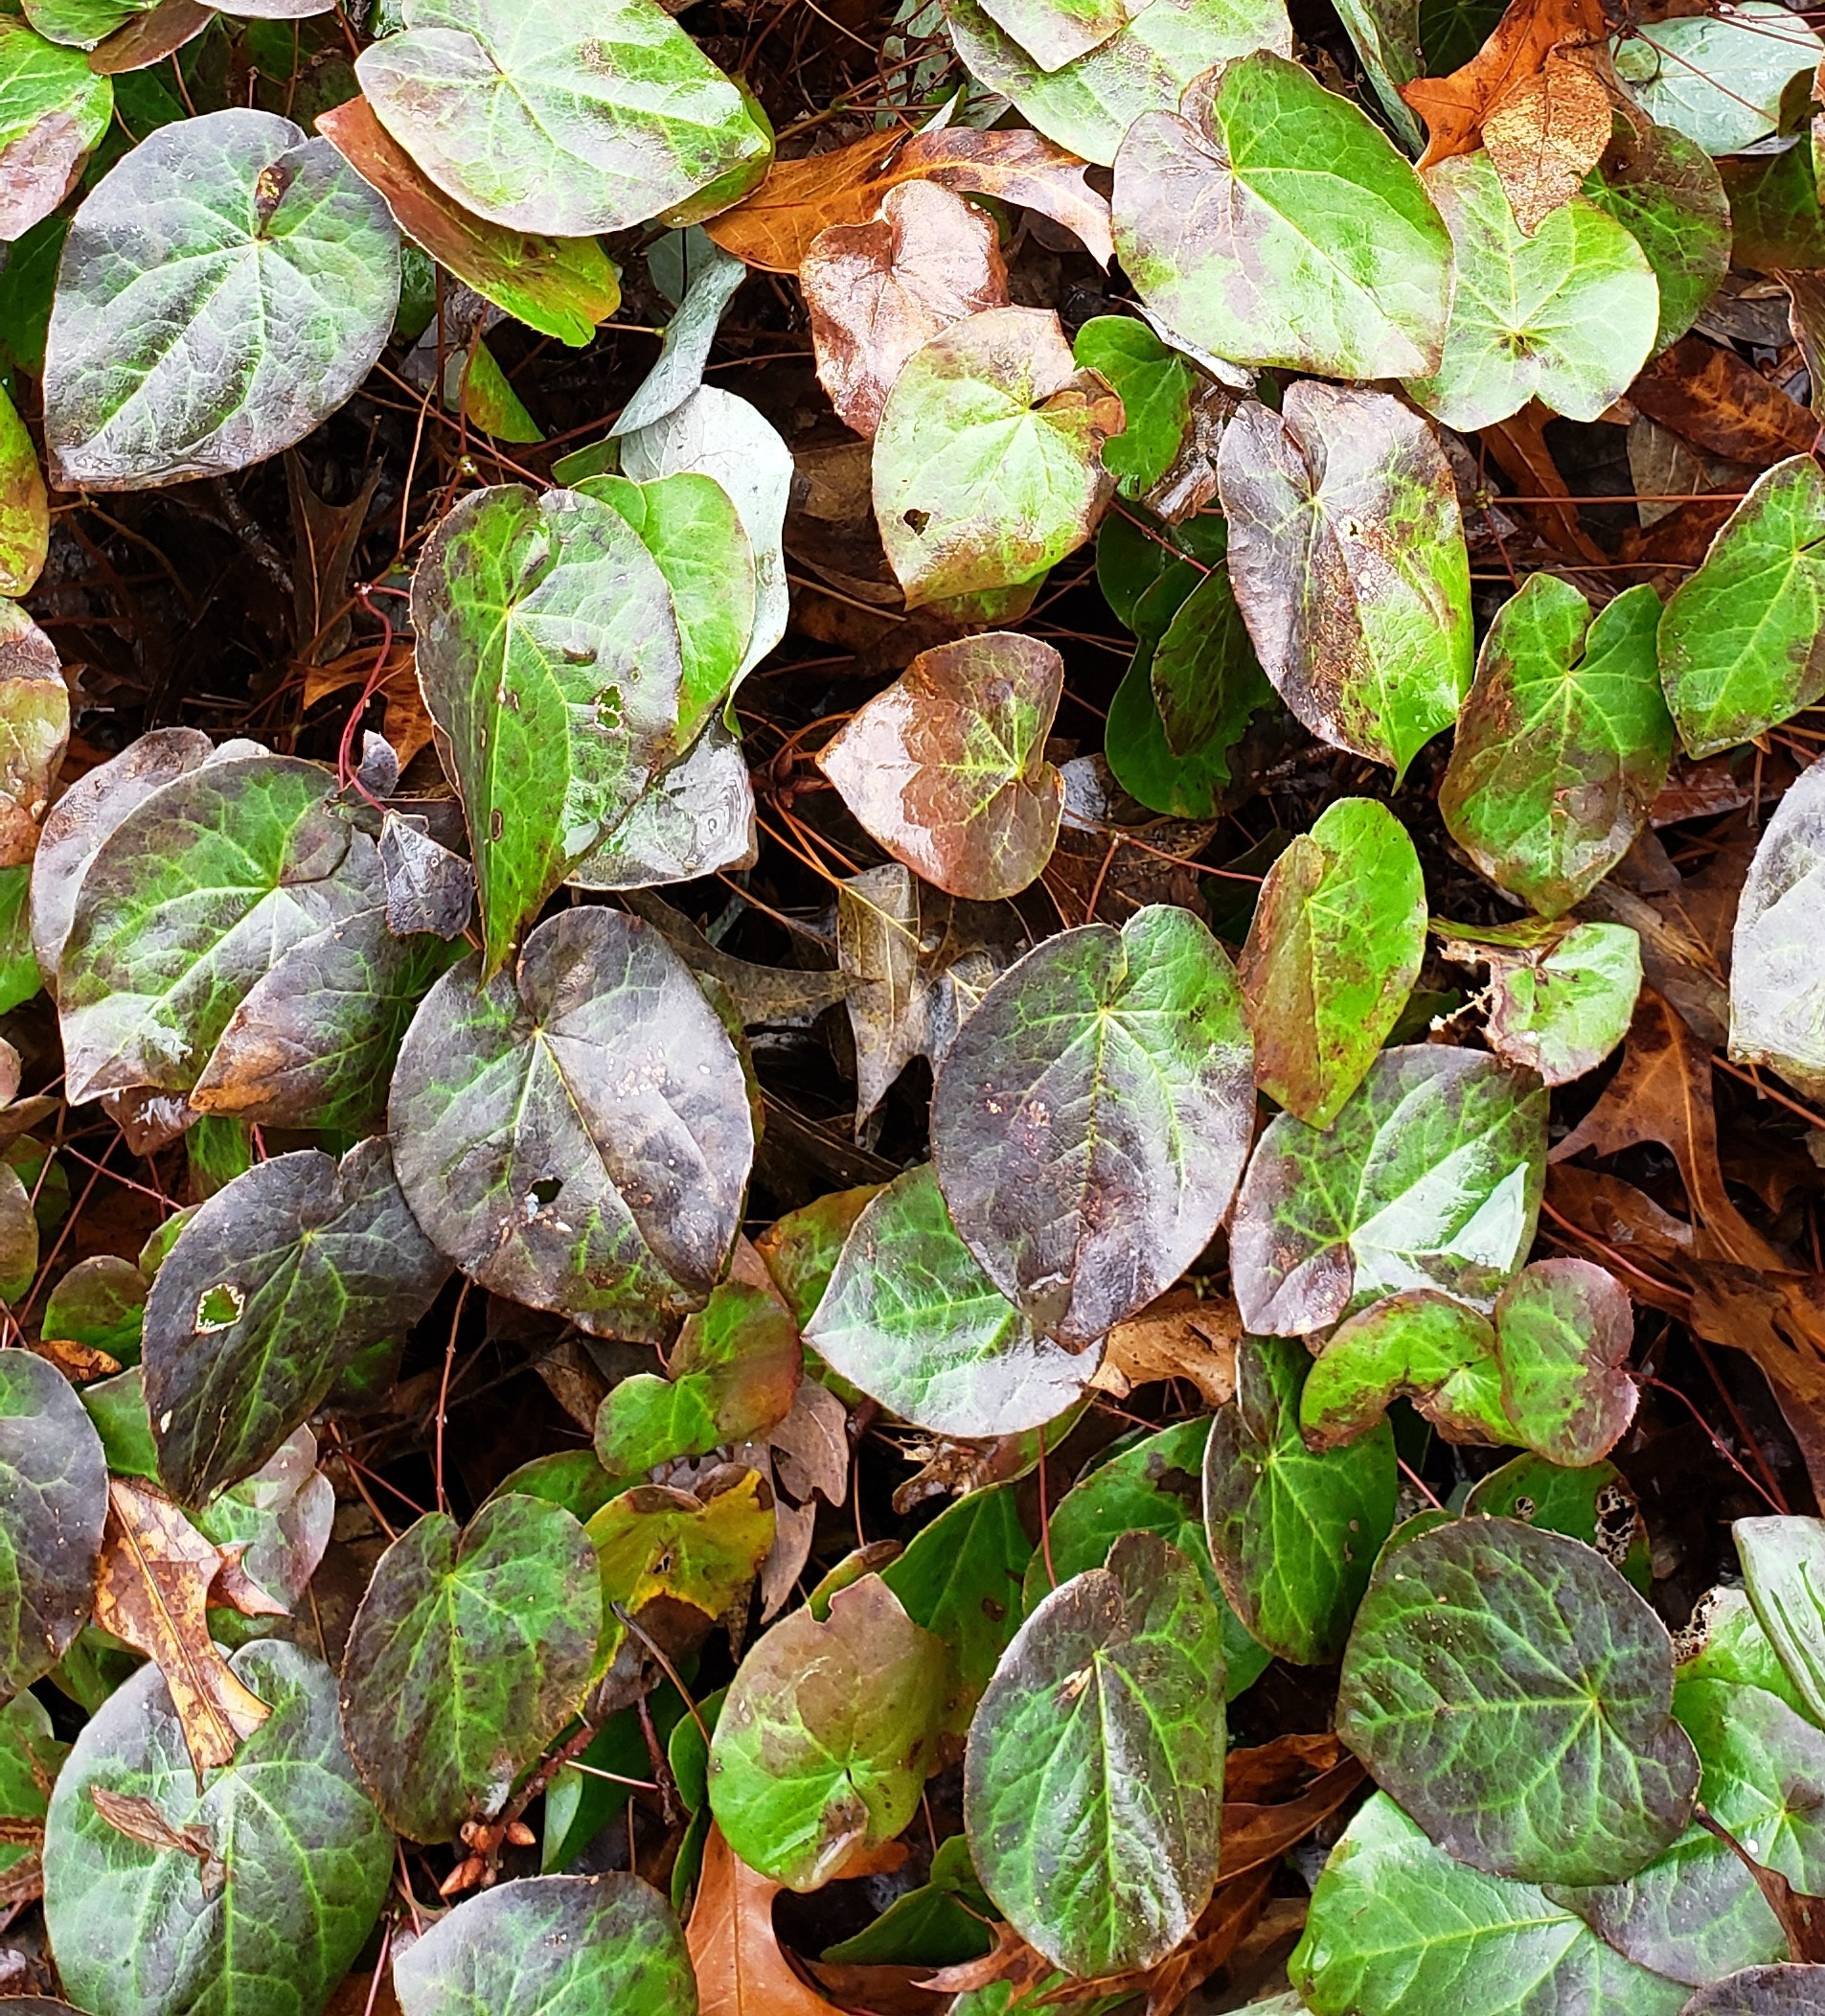 Epimedium is an evergreen groundcover for shade